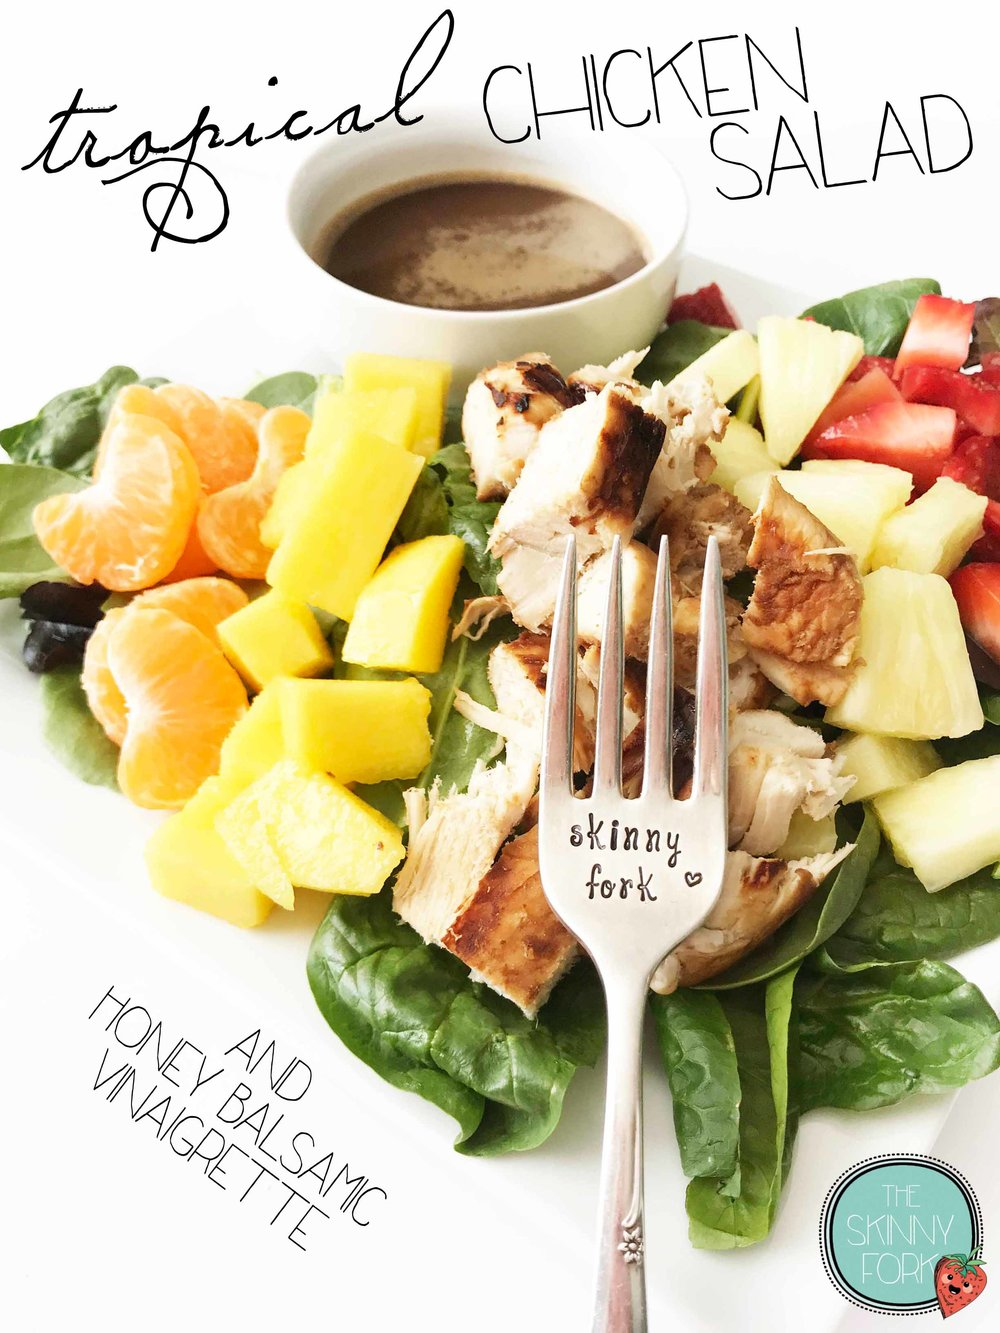 tropical-chicken-salad-pin.jpg